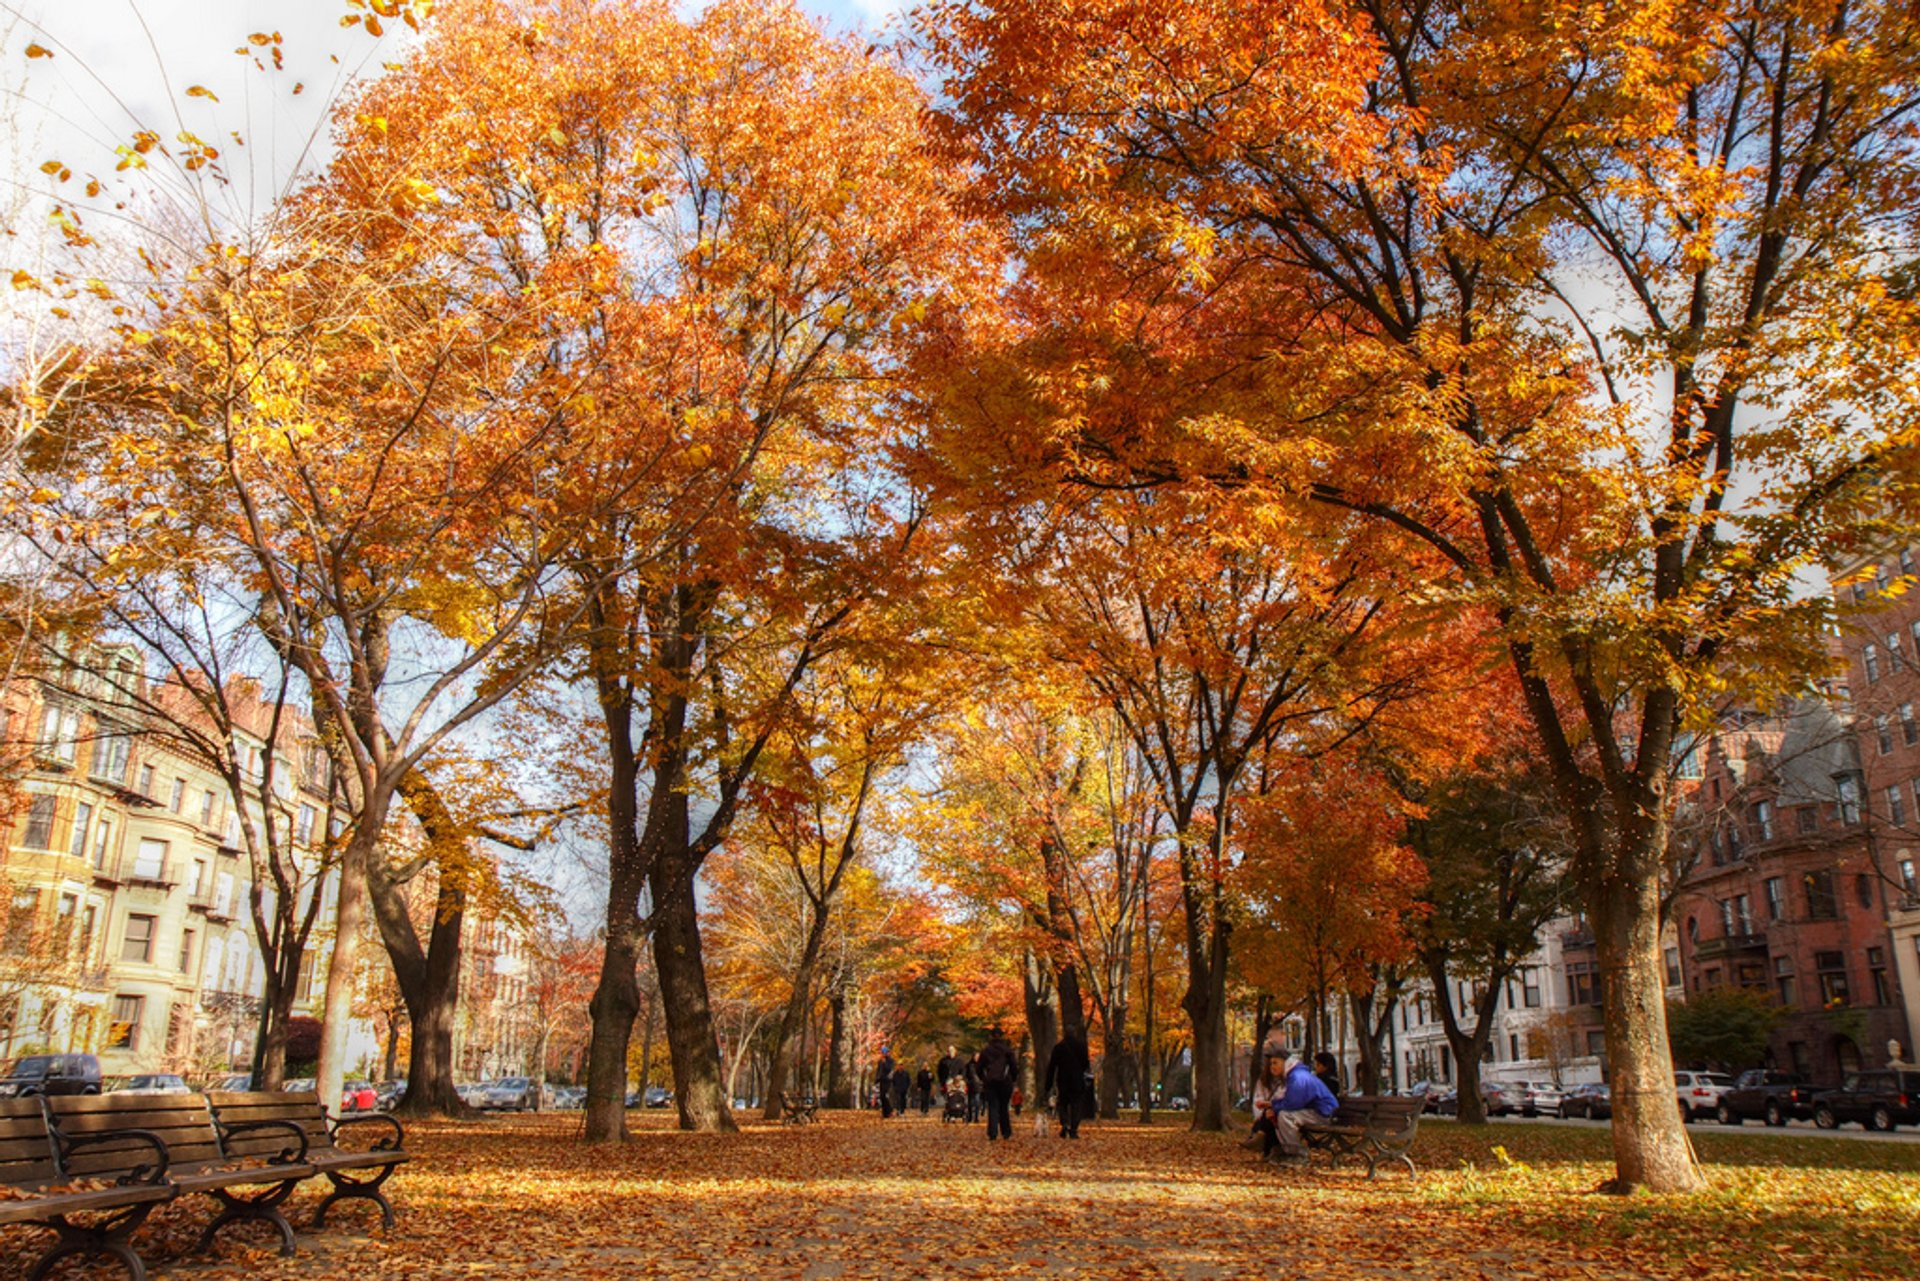 Fall Foliage in Boston 2019 - Best Time